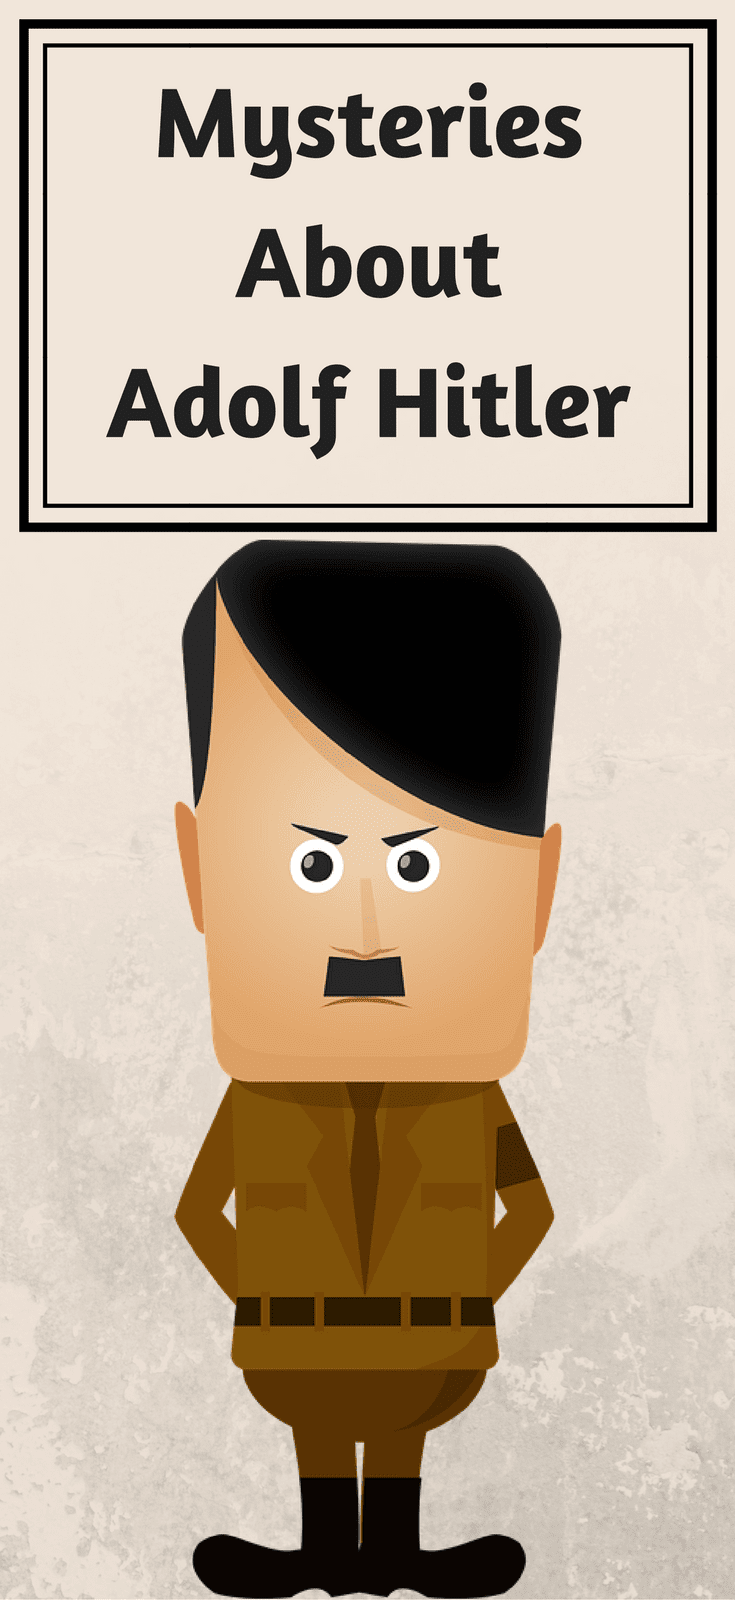 6 Mysteries About Adolf Hitler